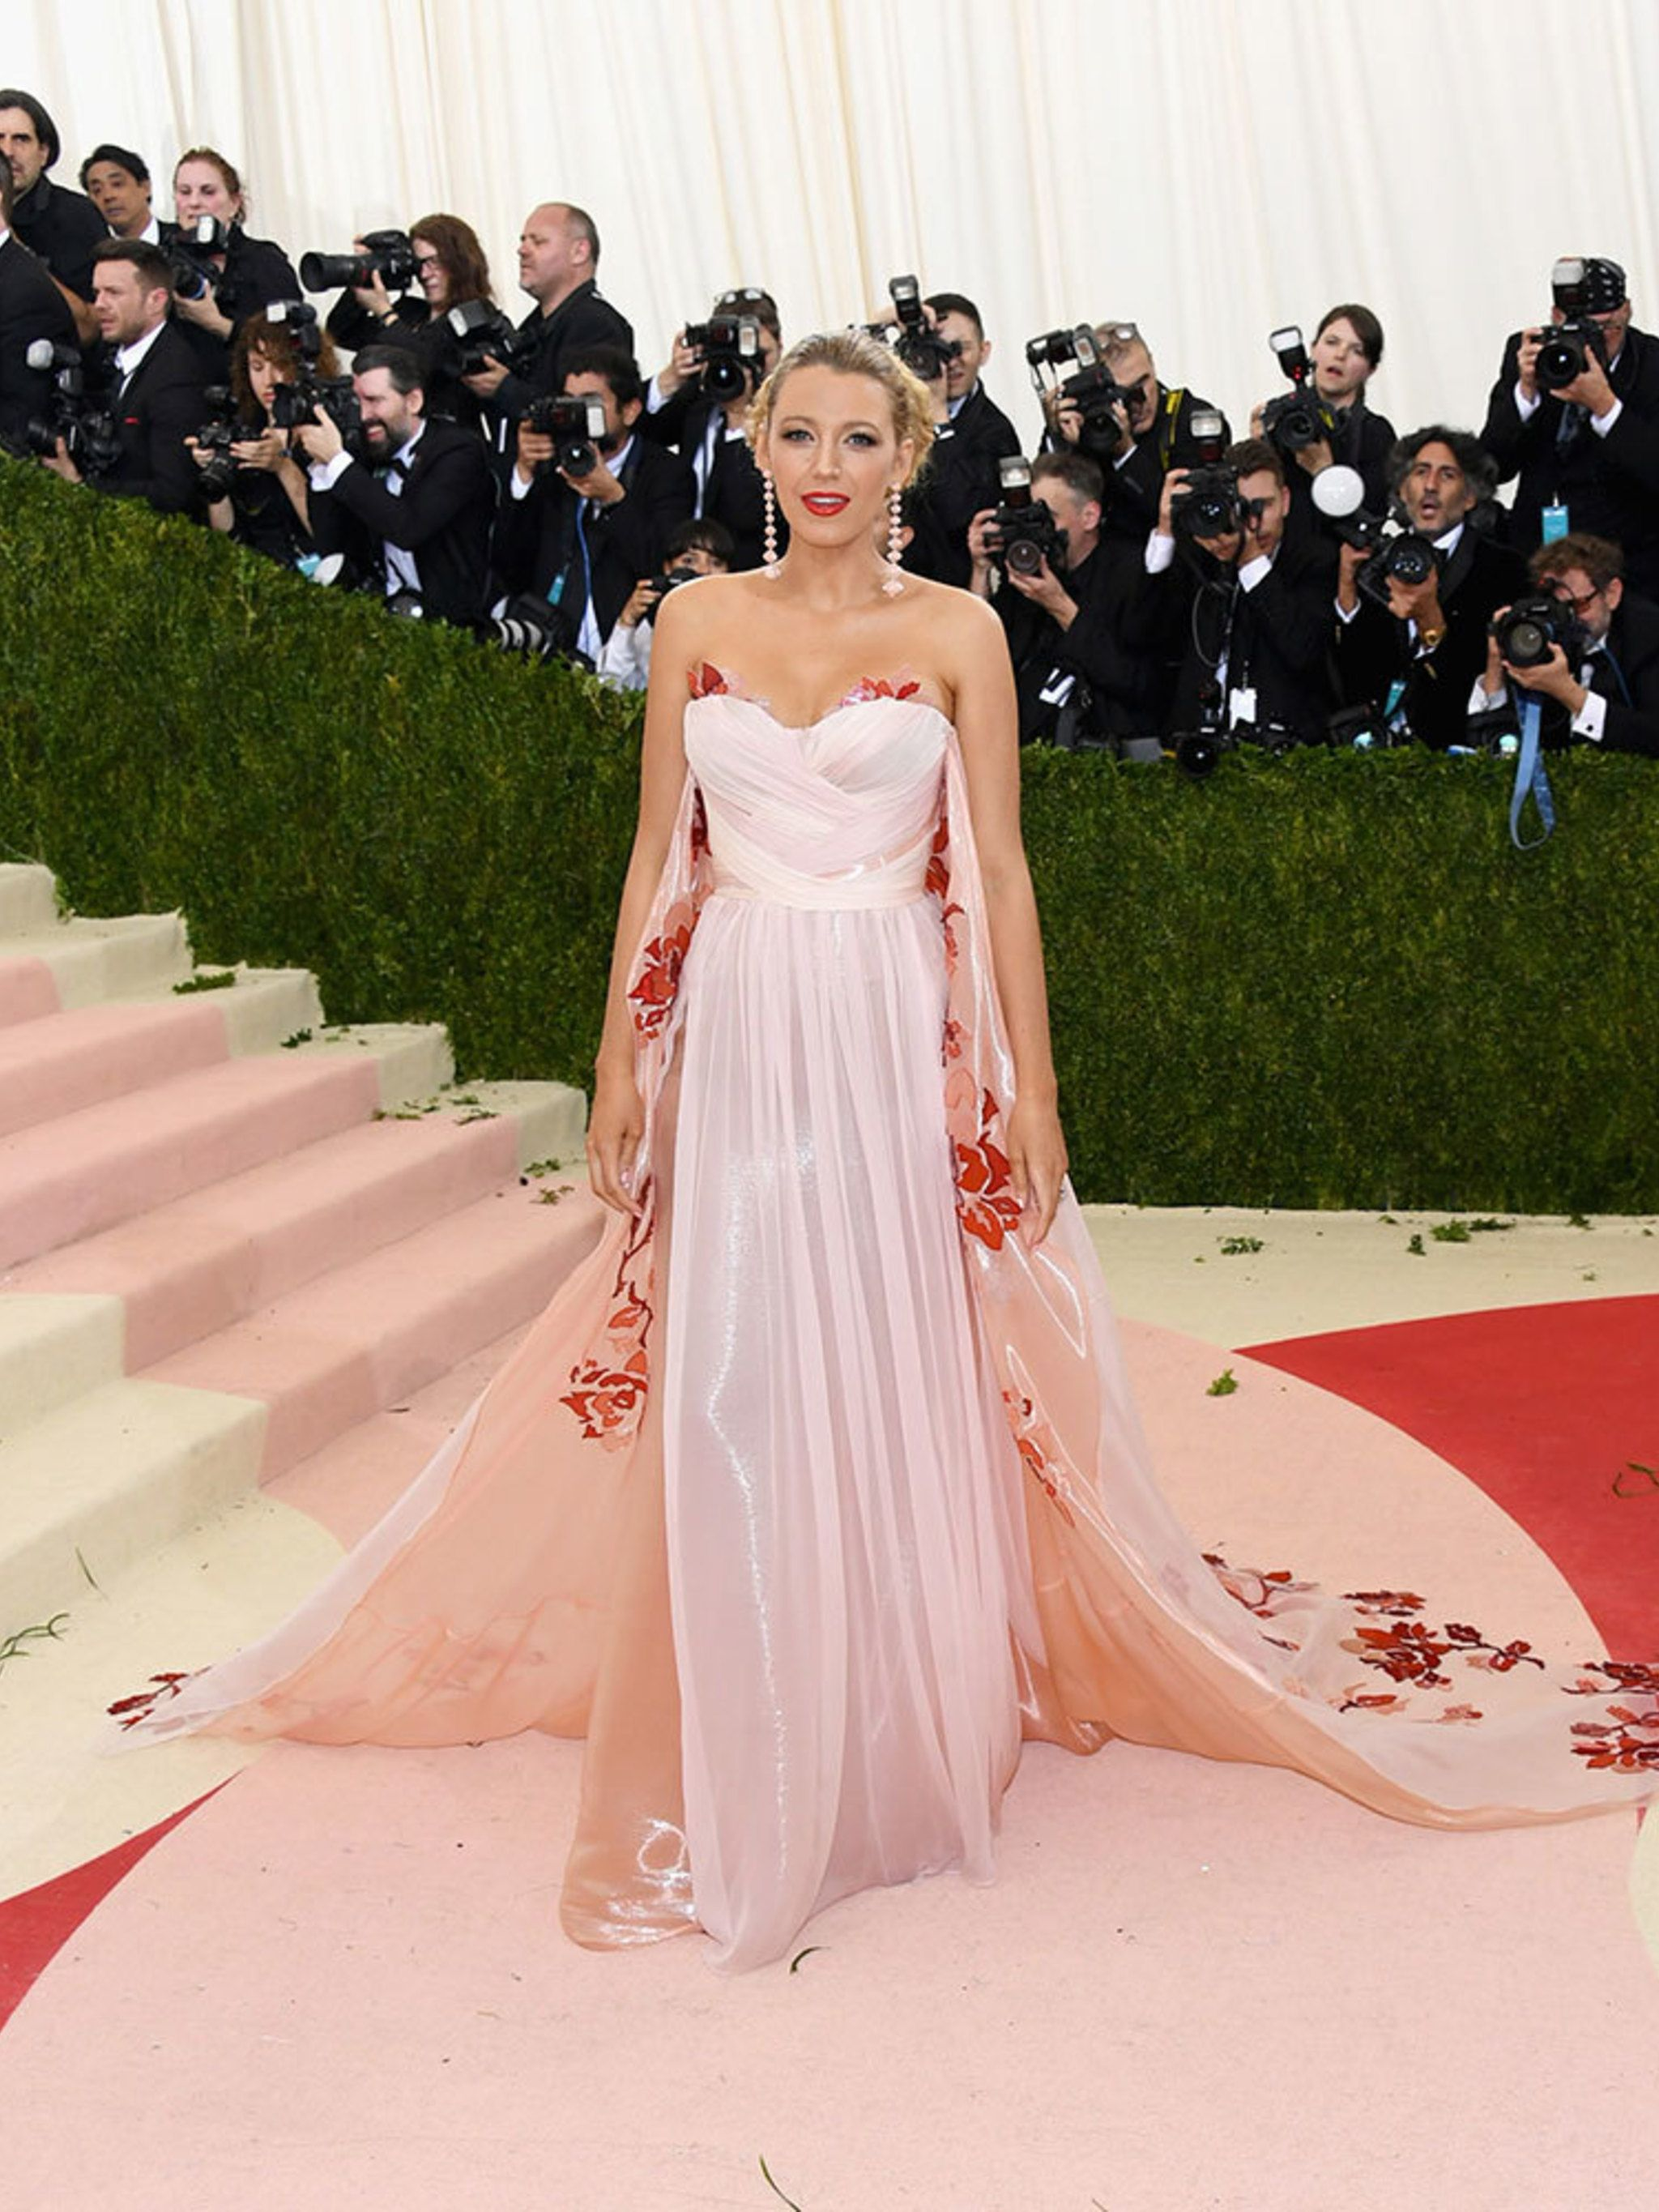 57bdc1513e0 Blake Lively Style File - Every One Of Blake Lively's Dreamiest Red Carpet  Outfits